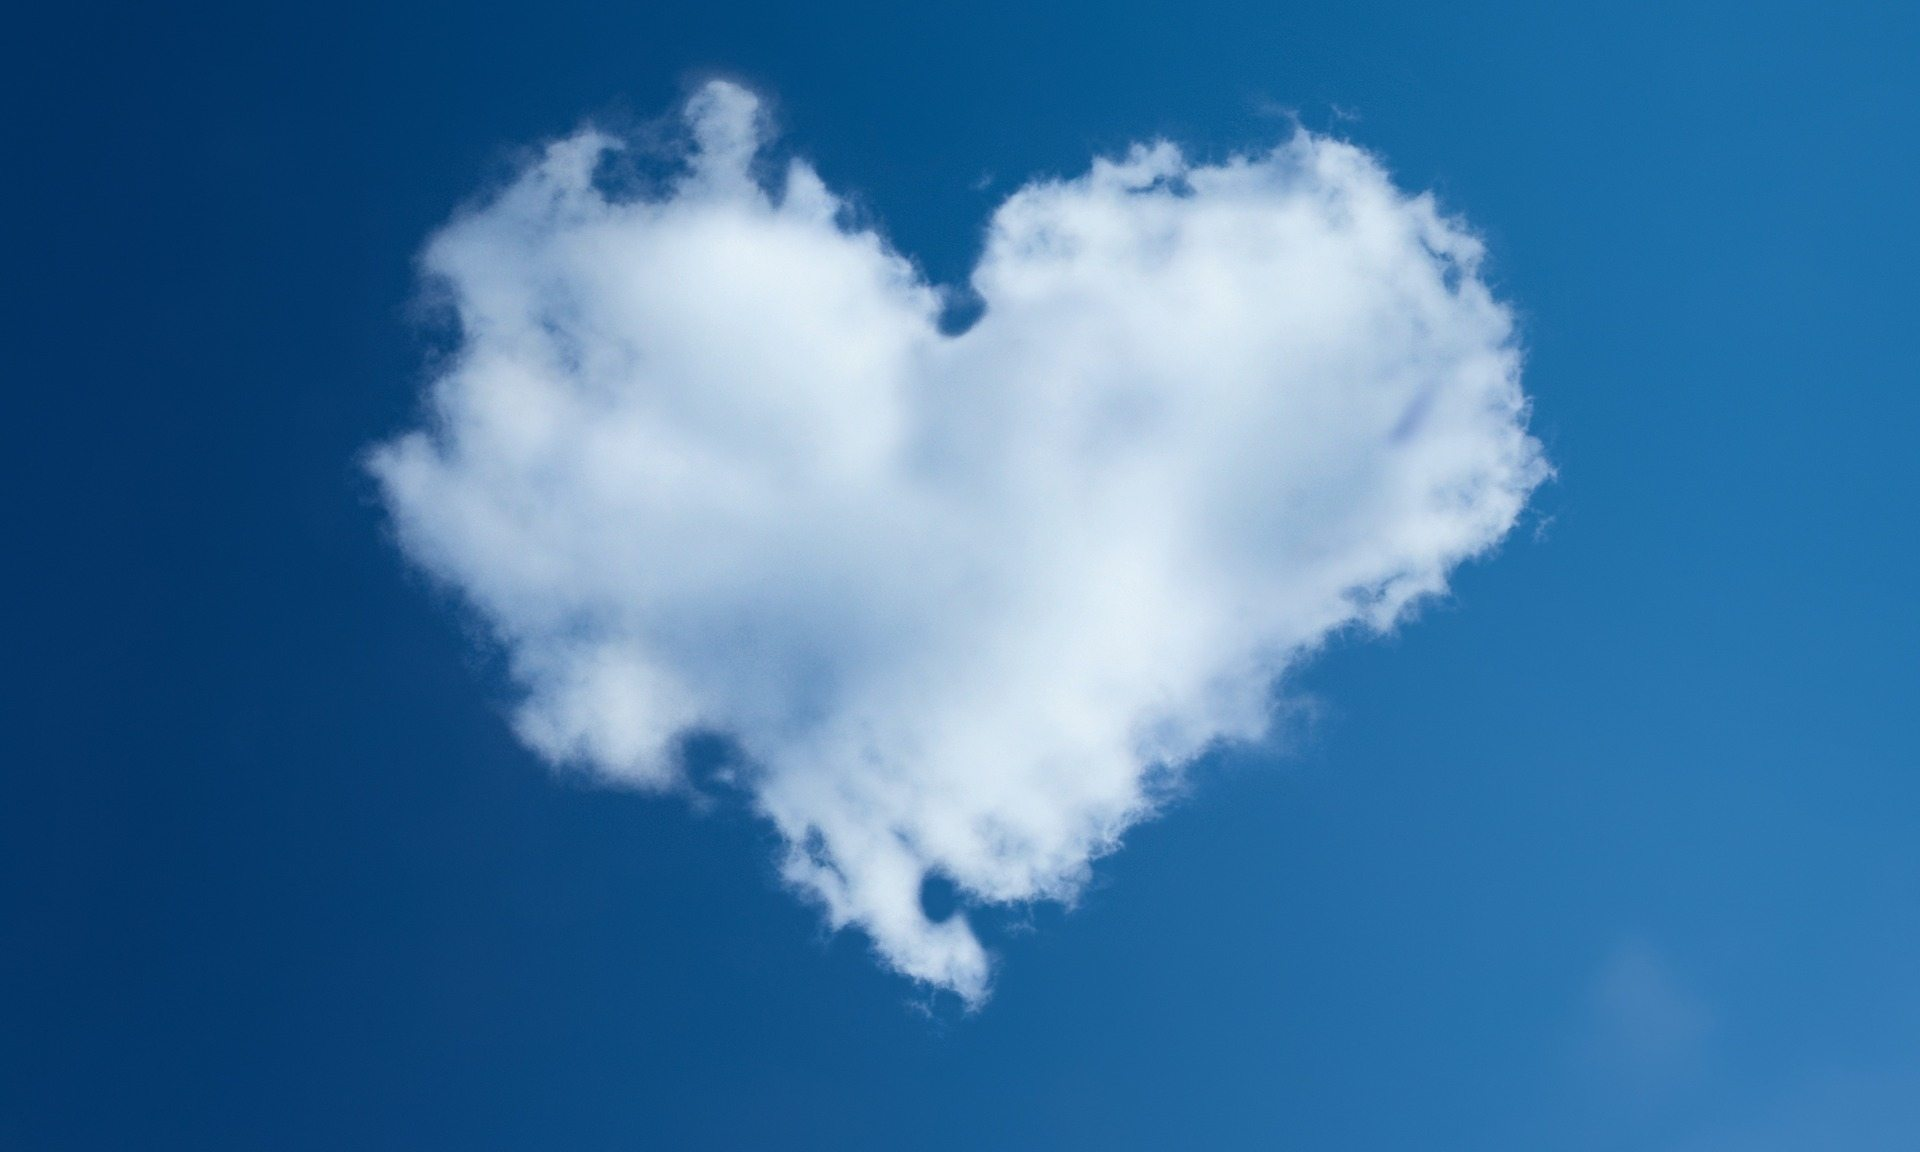 Image: A brilliant blue sky with a fluffy heart-shaped cloud in the middle